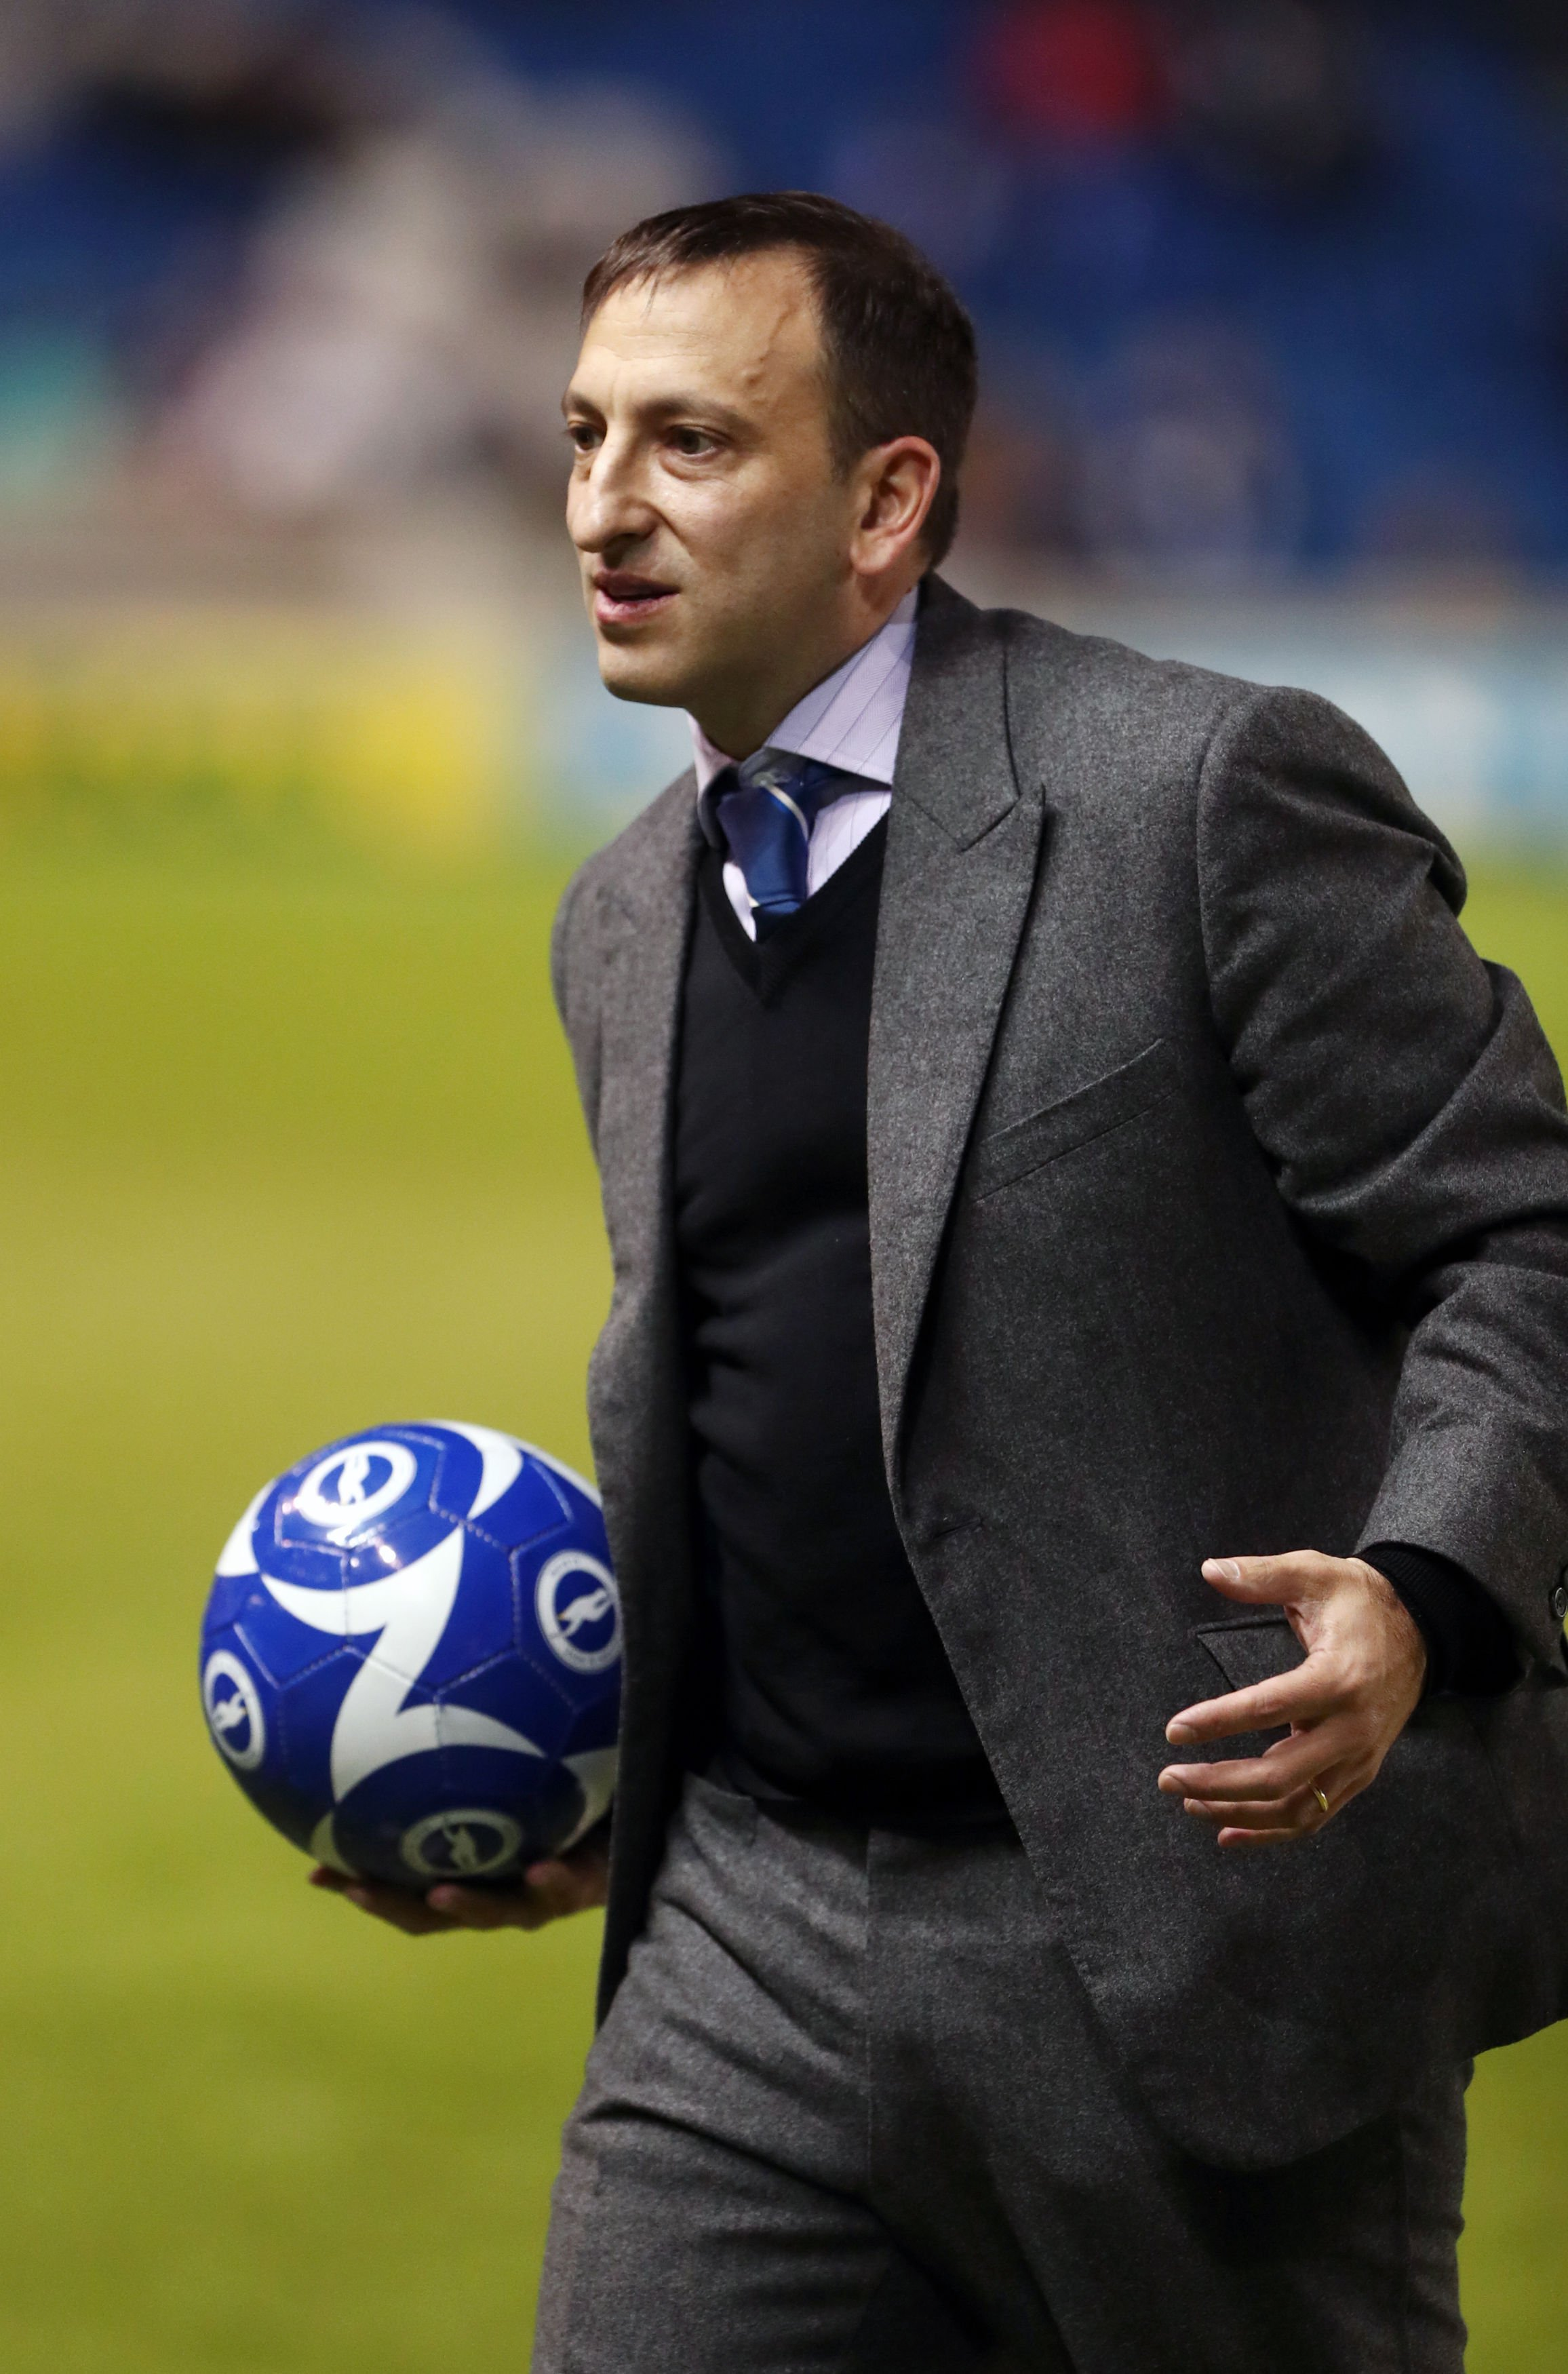 Reaching Premier League is just the start for ambitious Albion owner